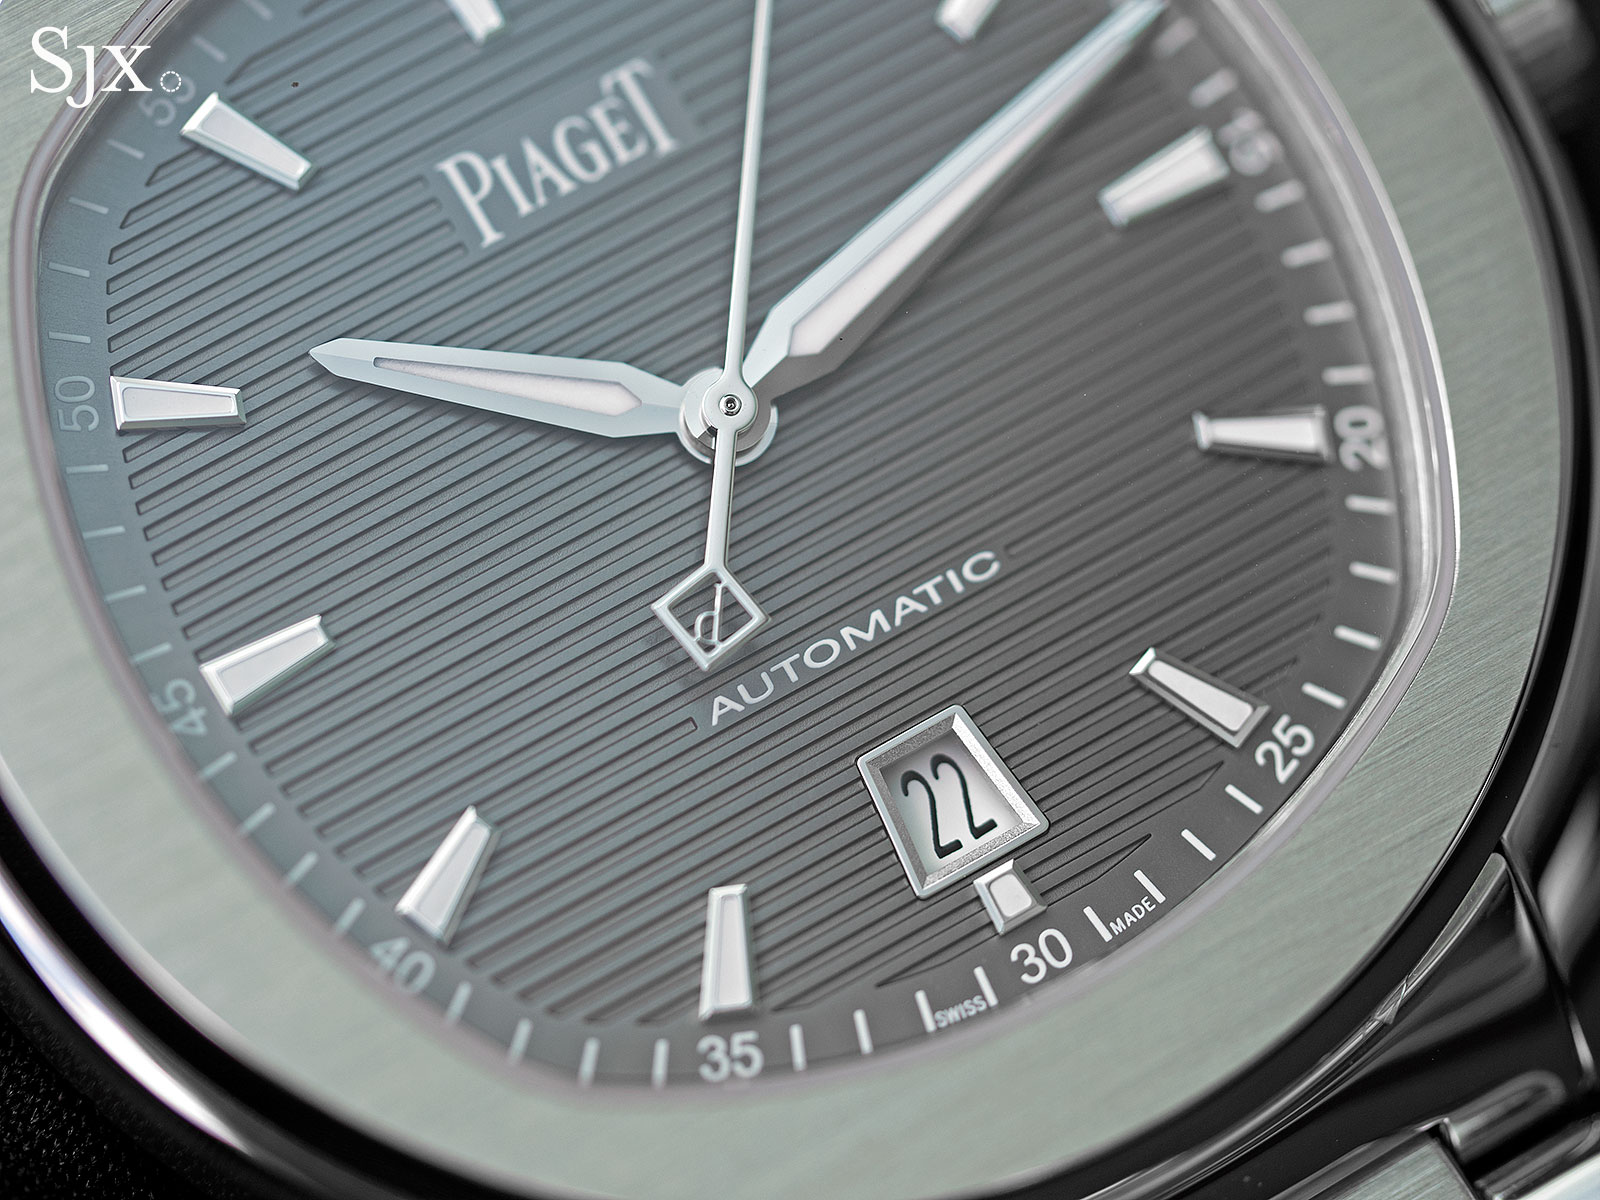 Piaget Polo S Automatic 5